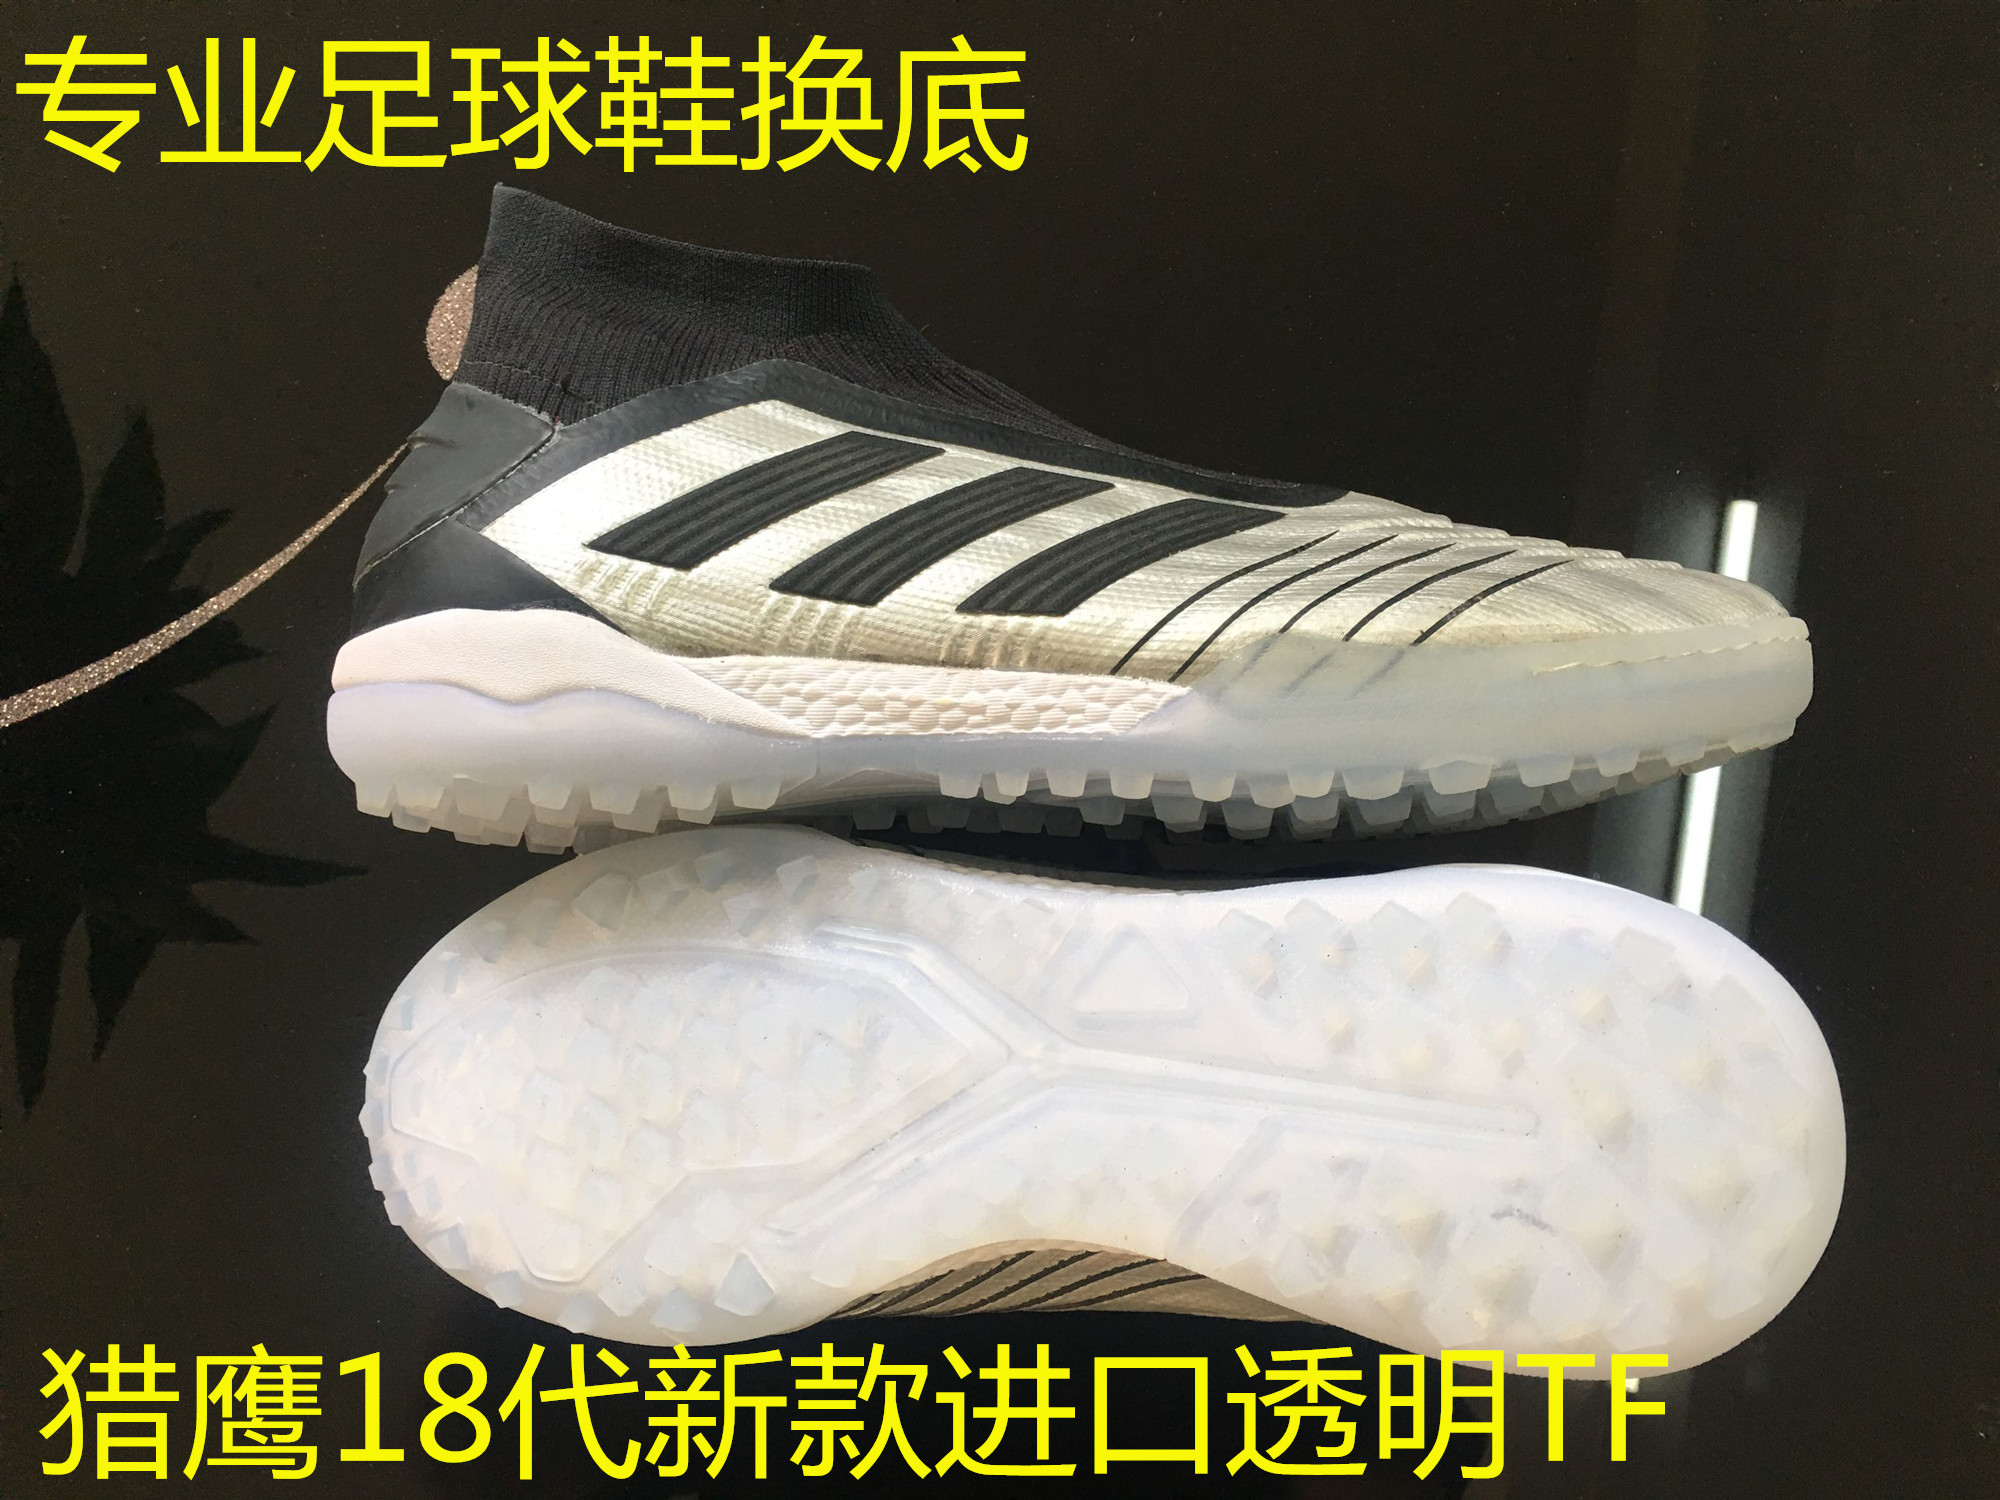 Lees professional football shoes sole changing Falcon 18 new transparent shock absorption and wear resistance TF repair football shoes